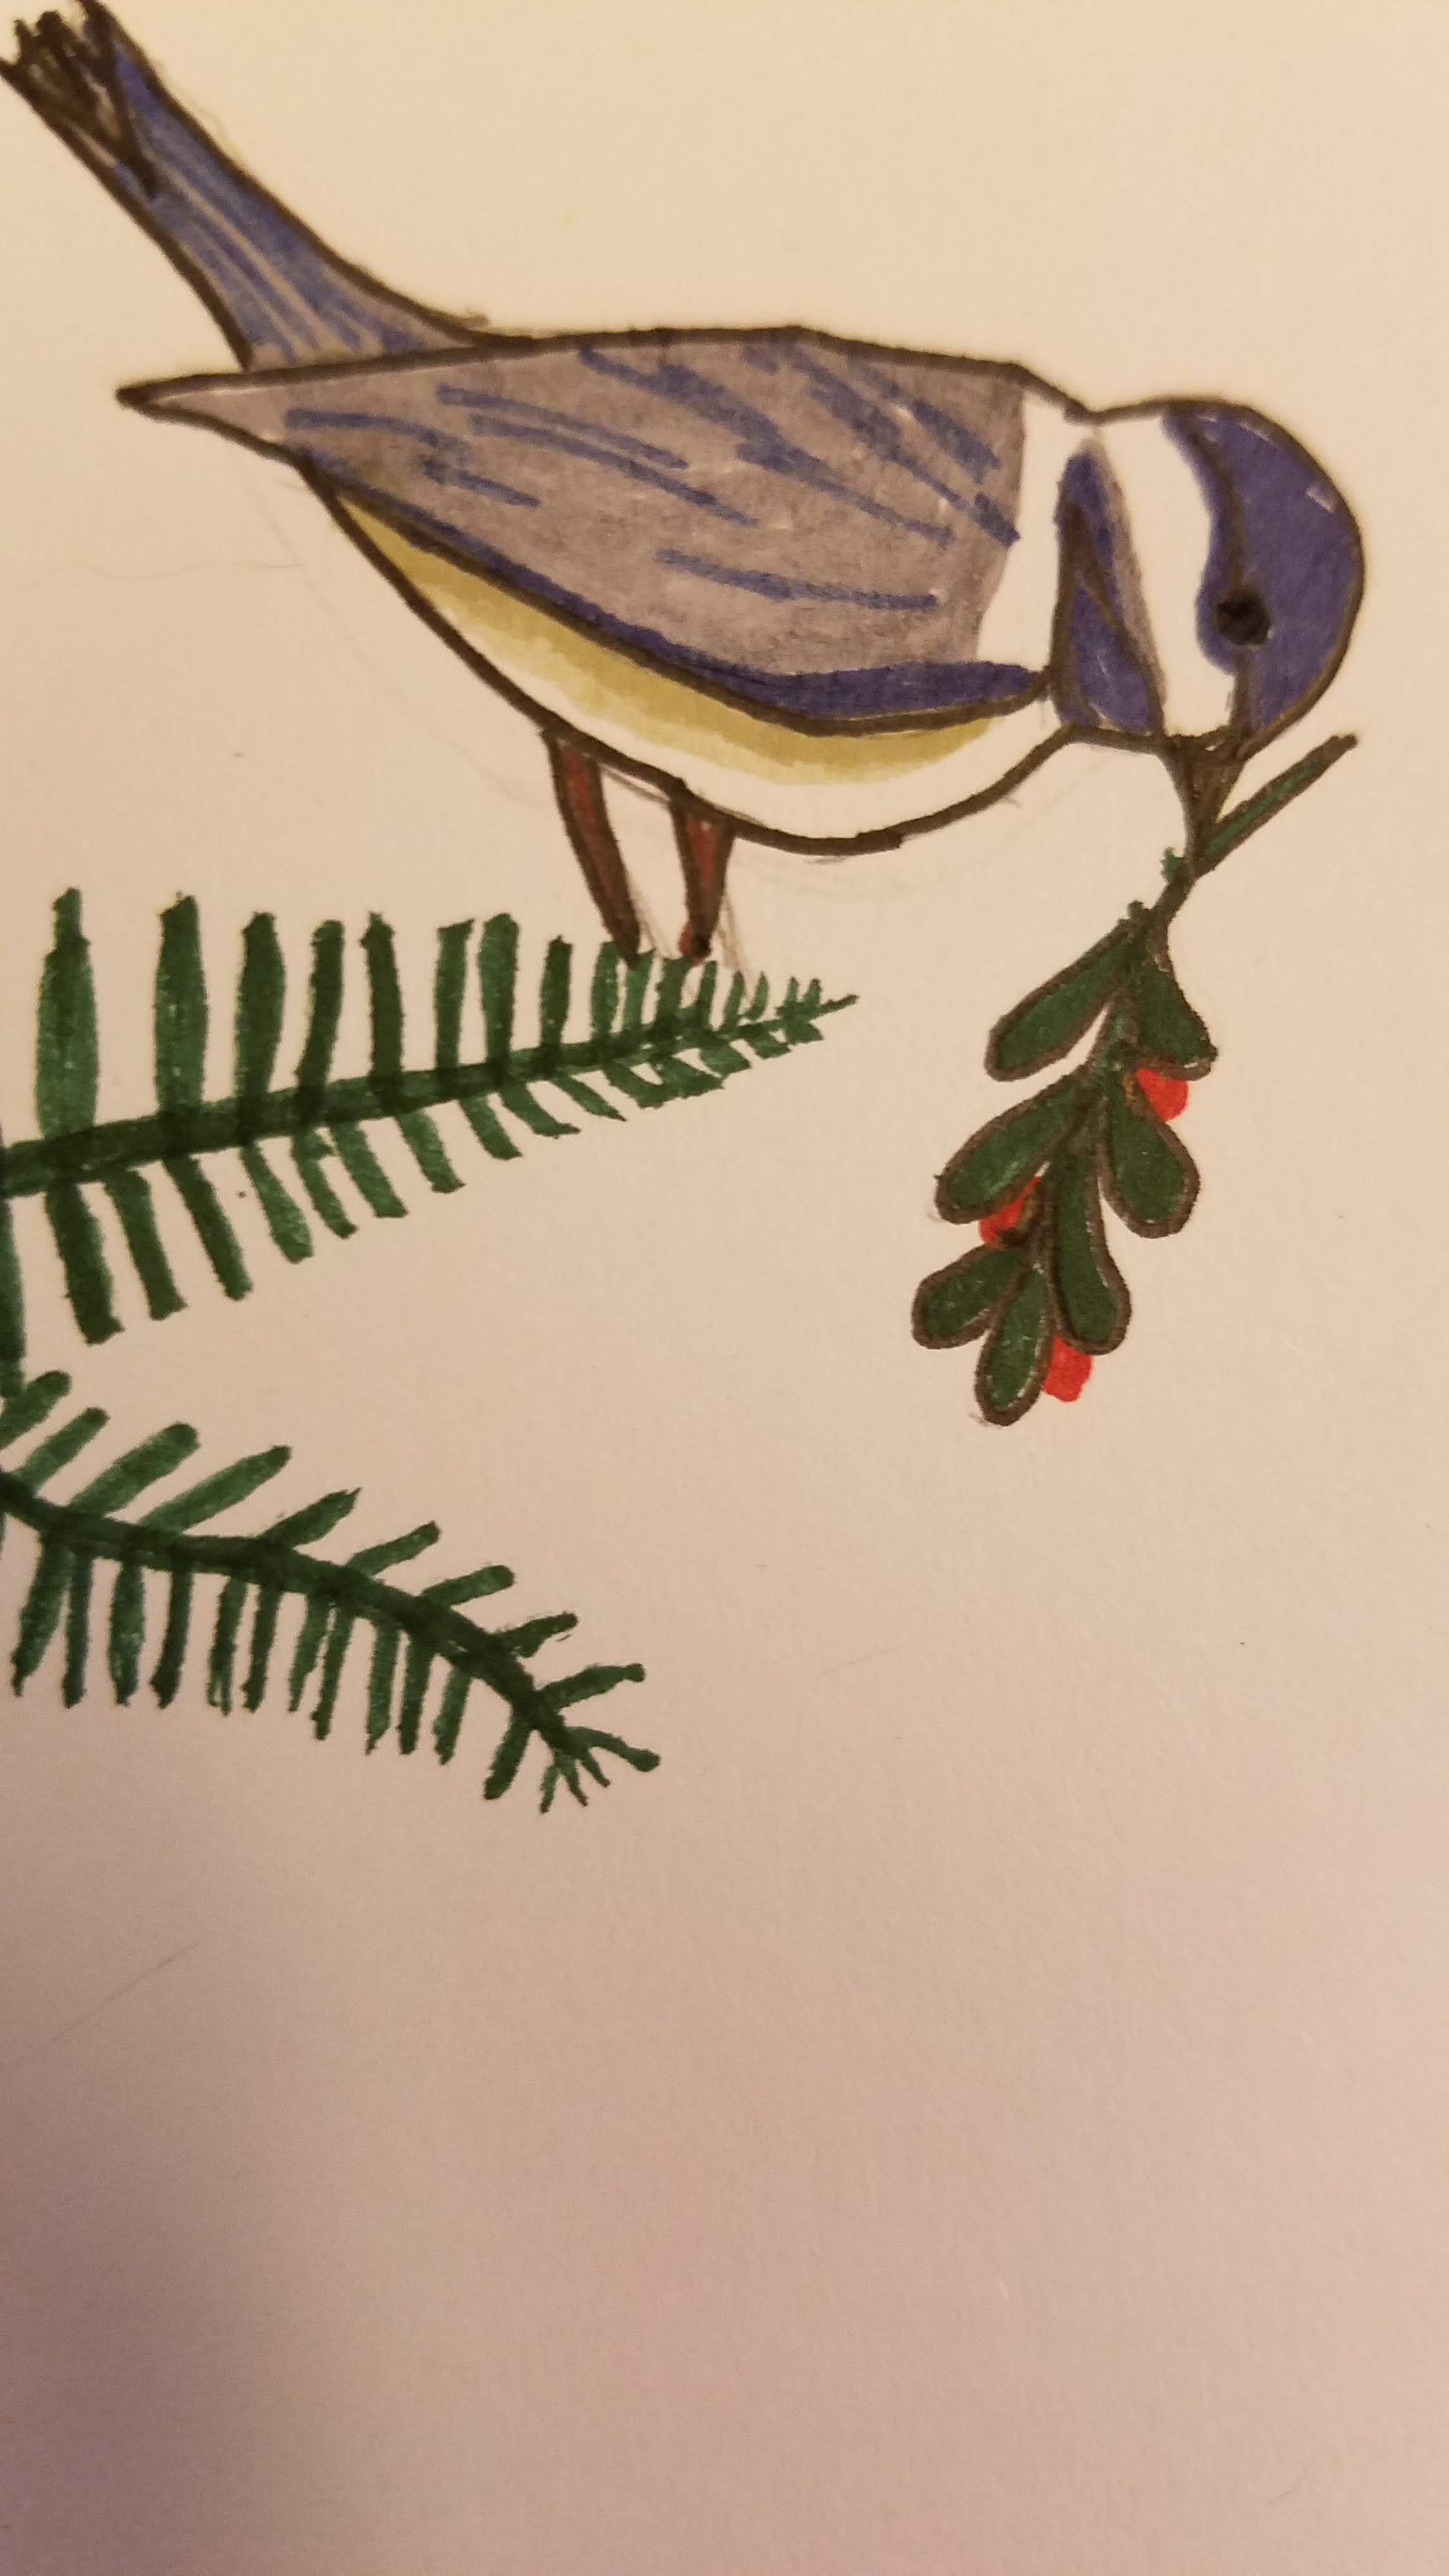 chickadee-holding-holy-sprig-with-berries-on-pine-branch